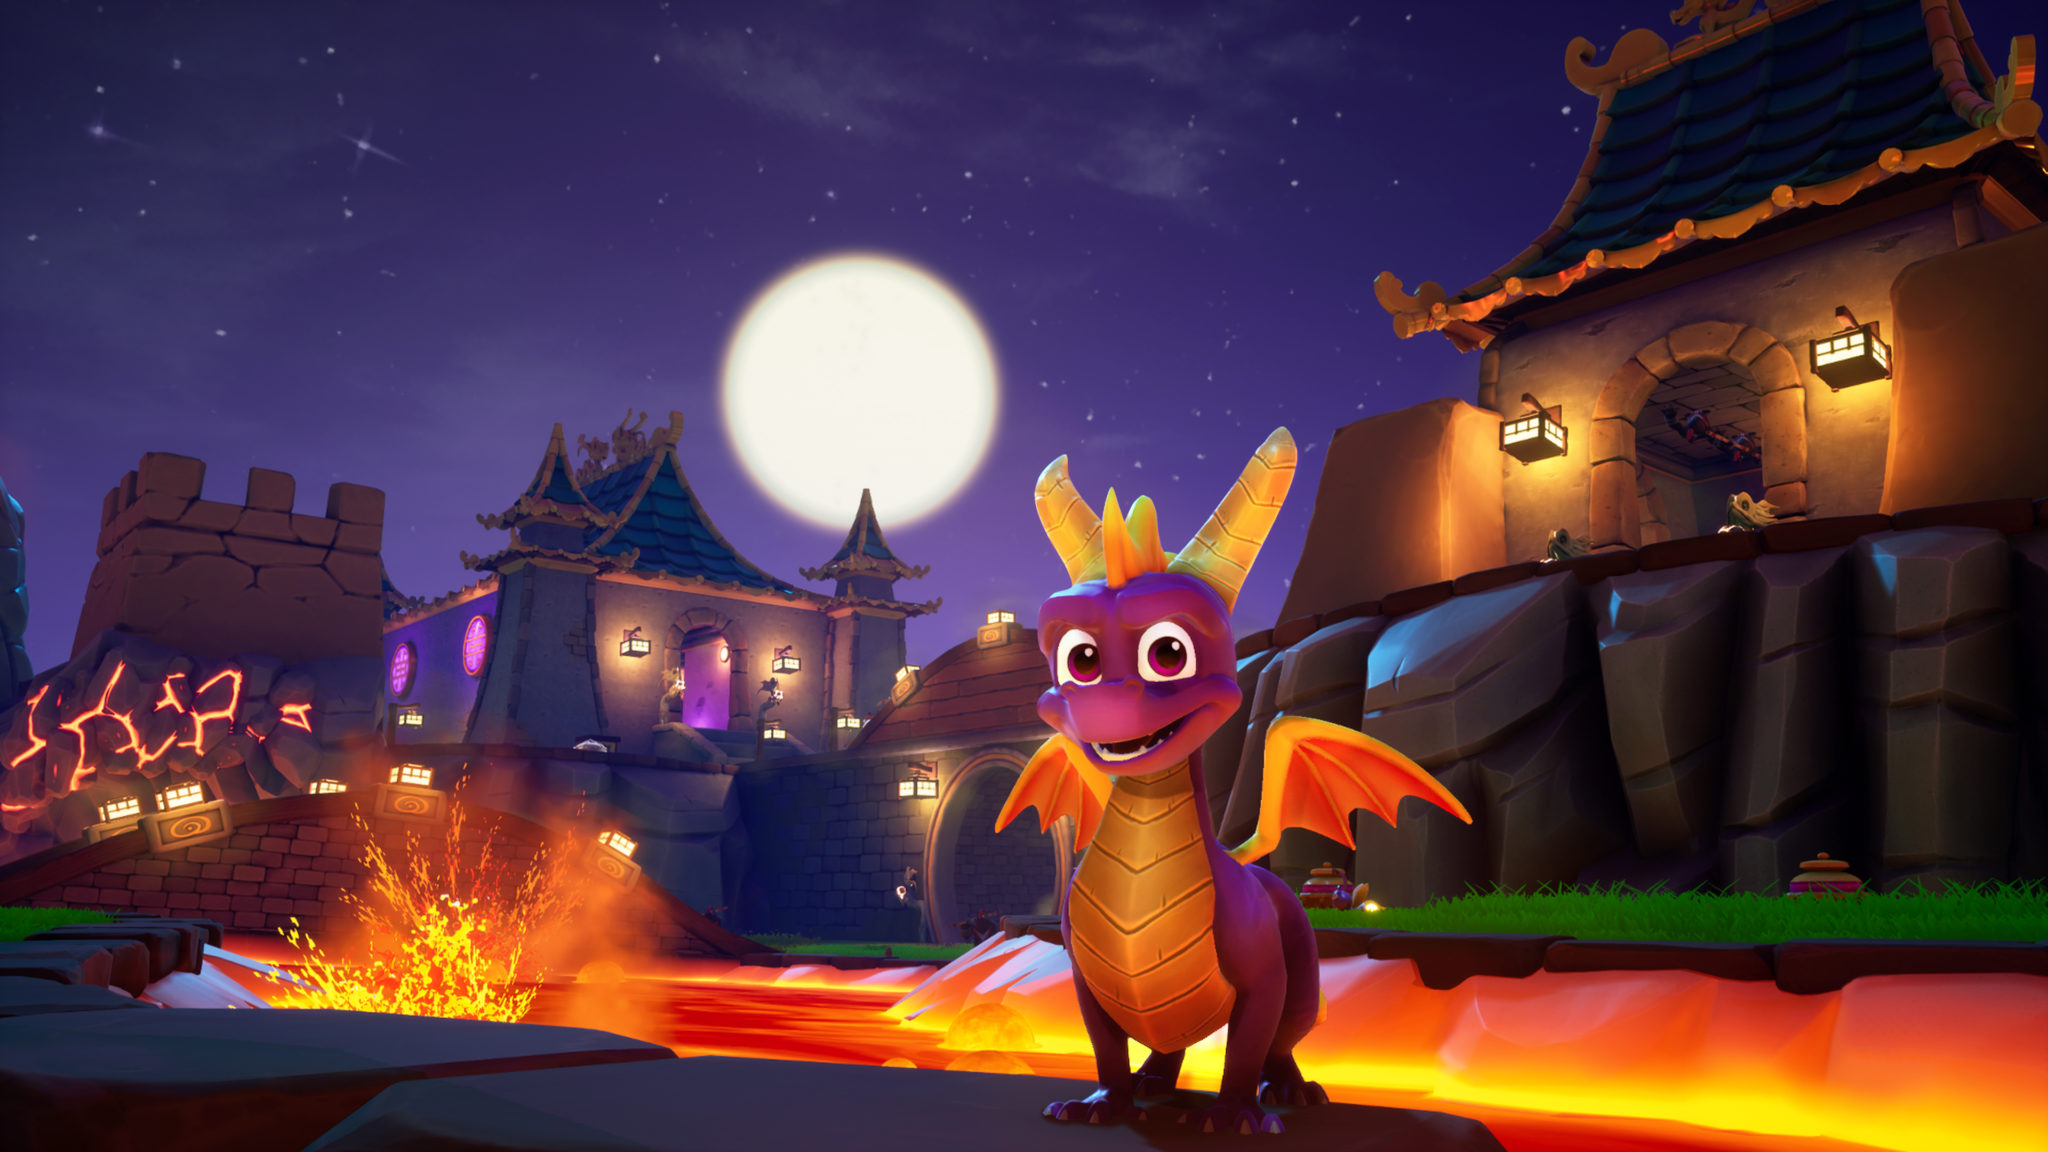 Spyro Reignited Trilogy Is One 2018's Best!